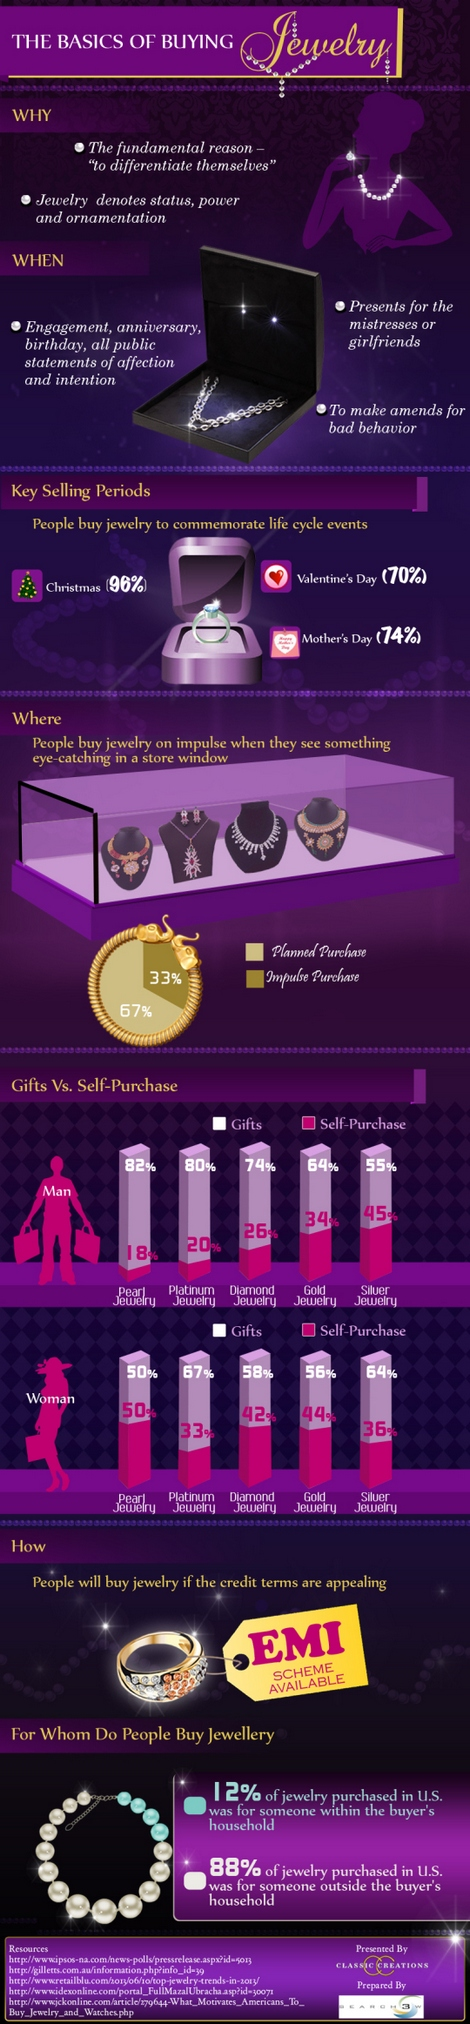 The Basics of Buying Jewelry infographic